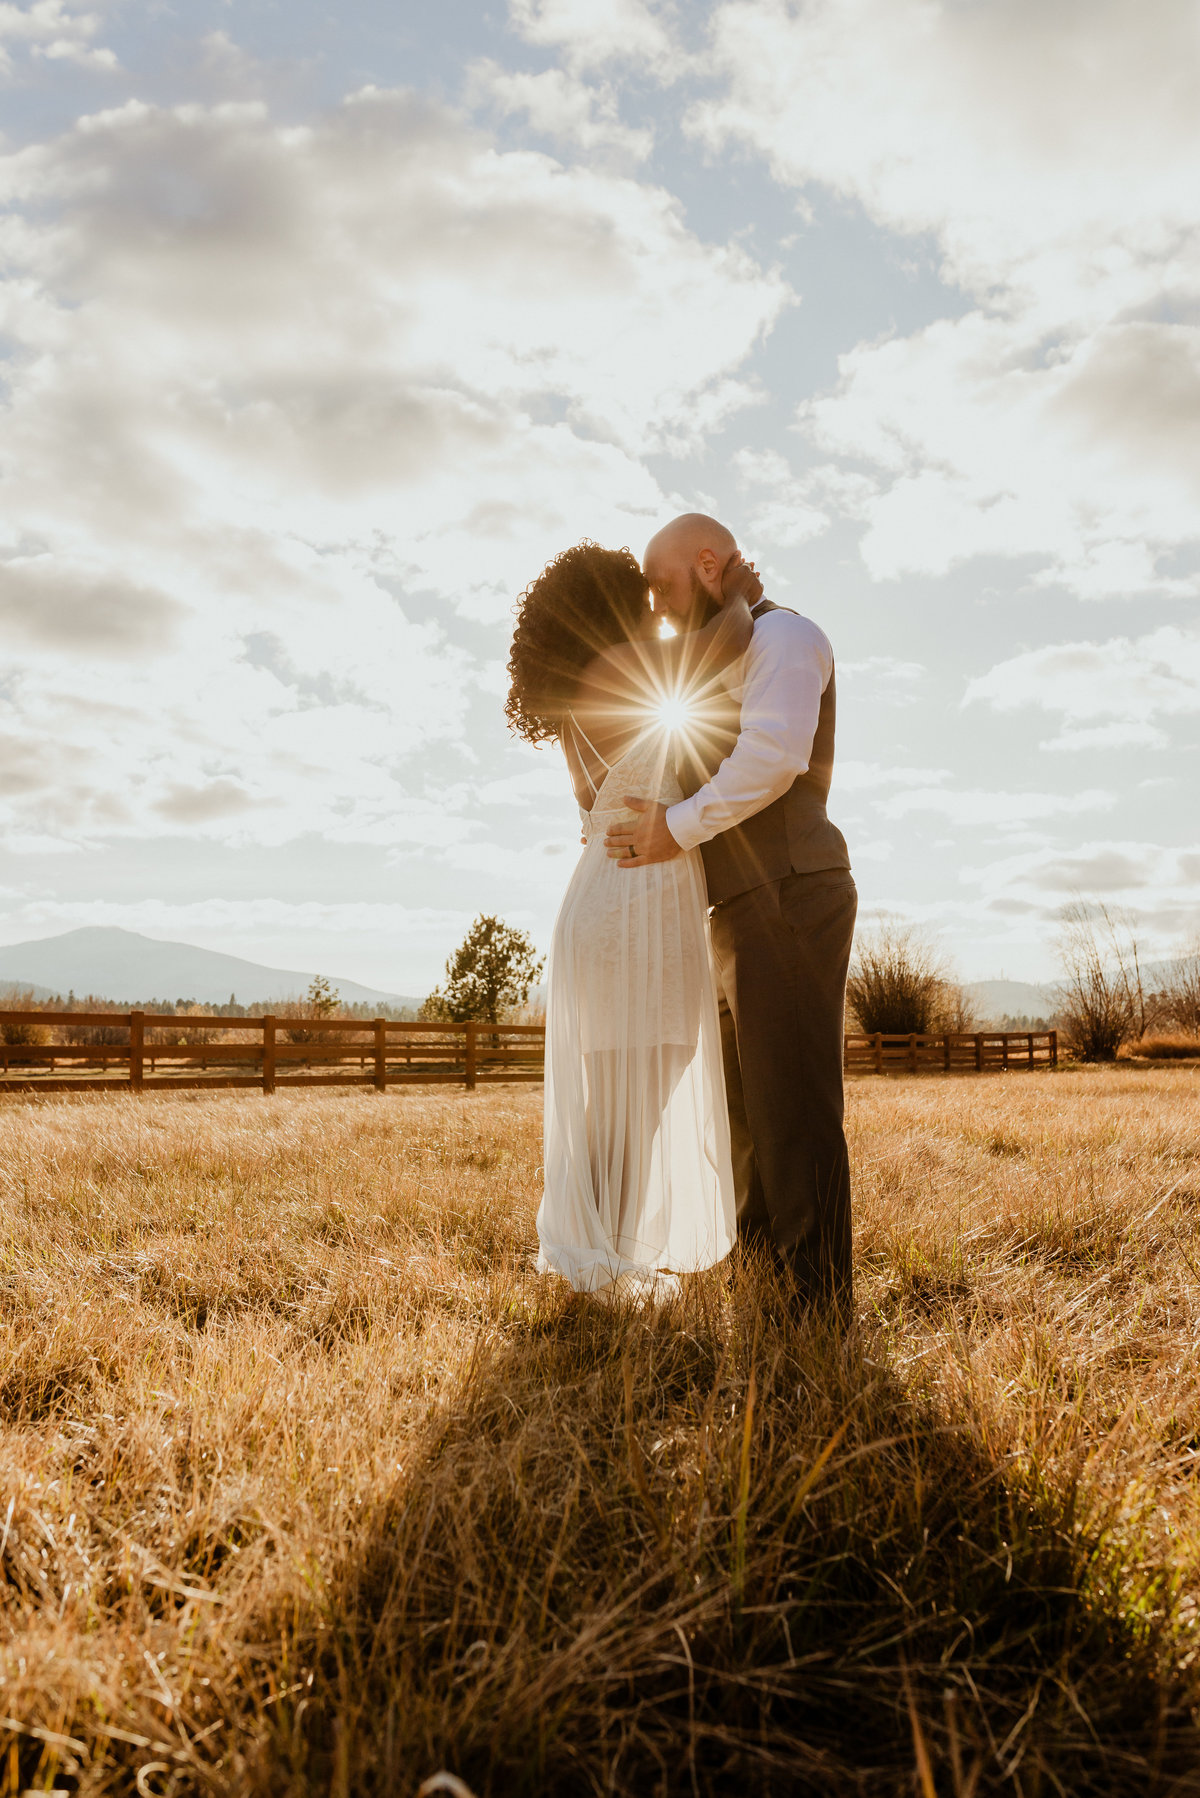 meredith_sands_photography_bend_oregon_destination_portrait_photographer_wedding_elopement_couple -1